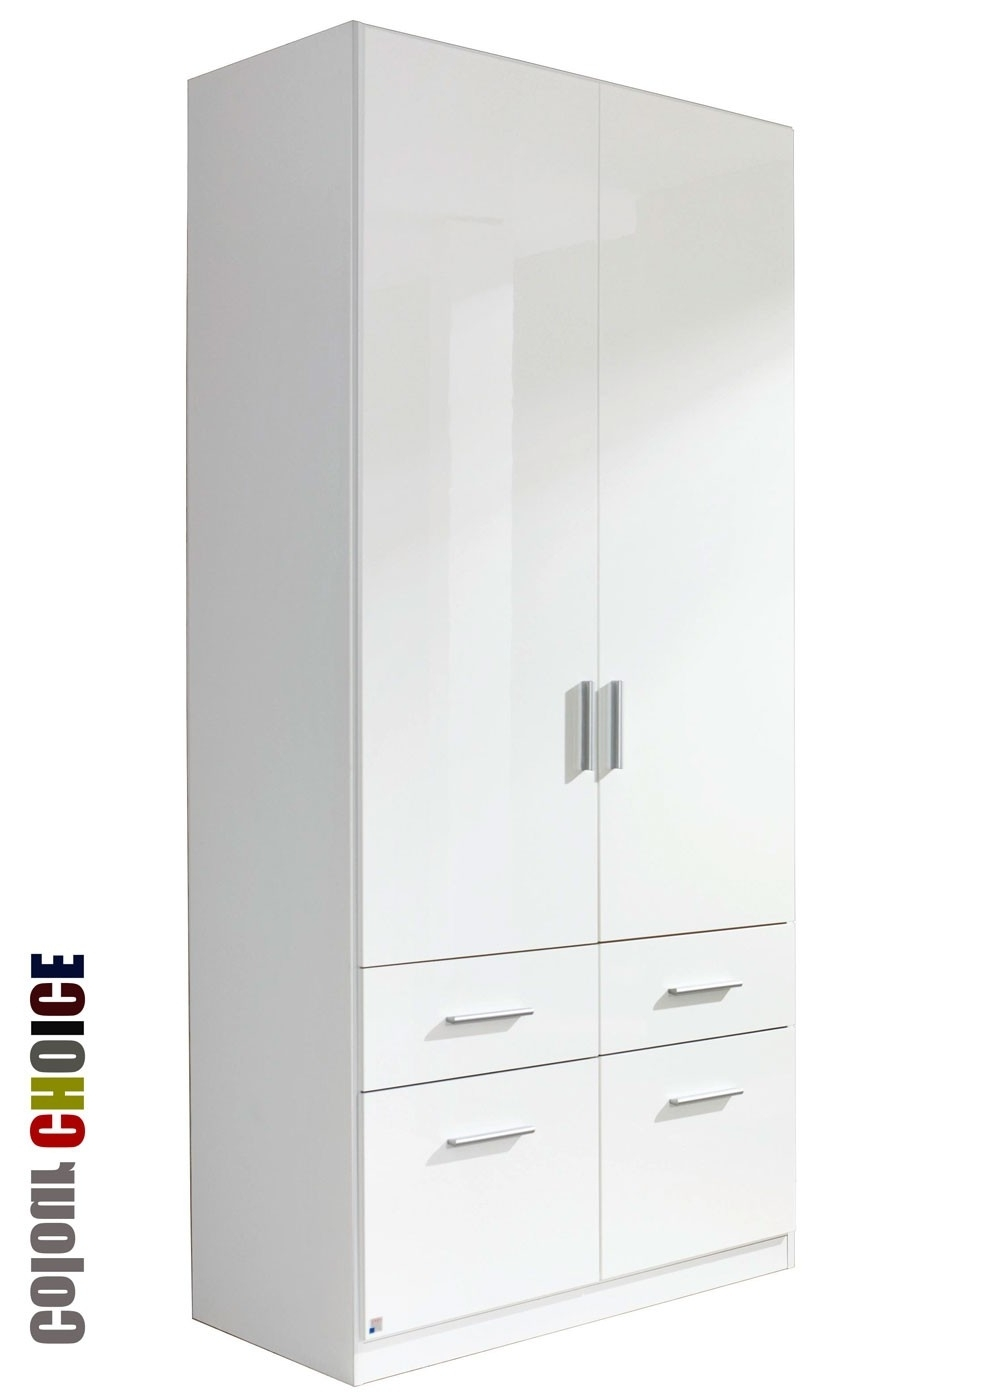 Rauch High Gloss Cello 2 Door 4 Drawer Wardrobe Throughout Popular Two Door White Wardrobes (View 9 of 15)